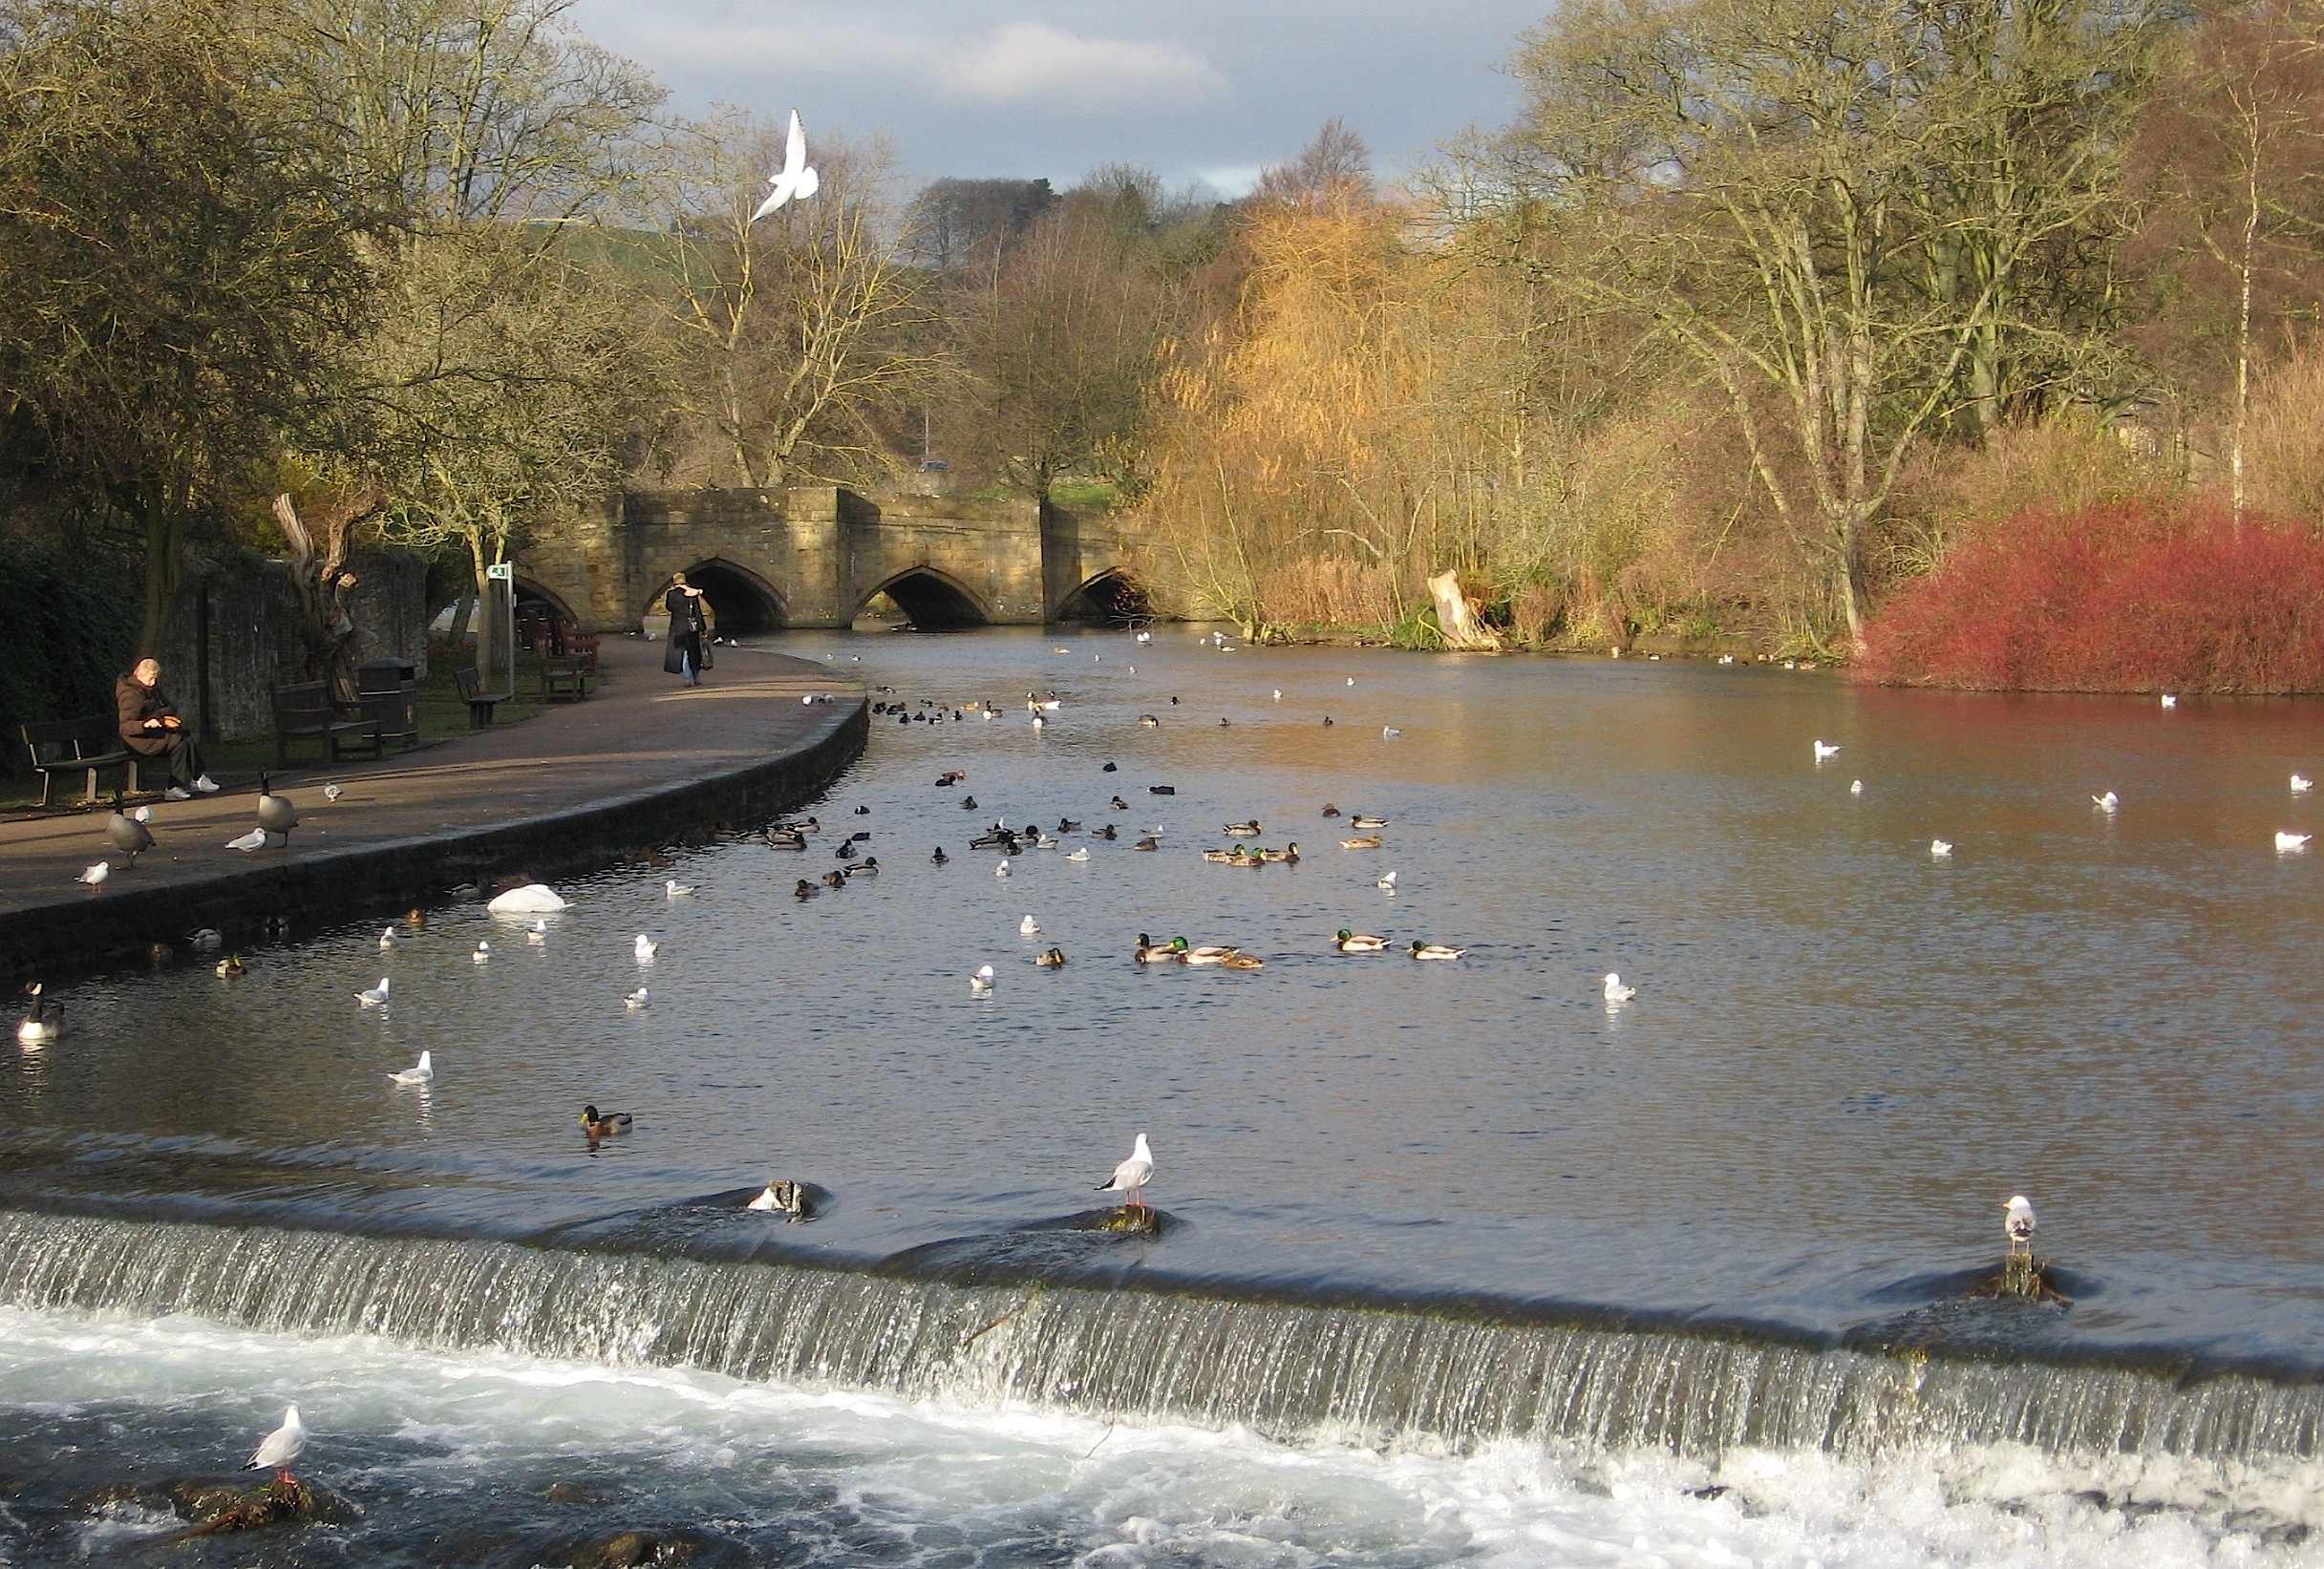 bakewell dating Bakewell has been a name that bakewell – land of tarts amongst its historical curiosities are a 14th century font and a parish chest dating.